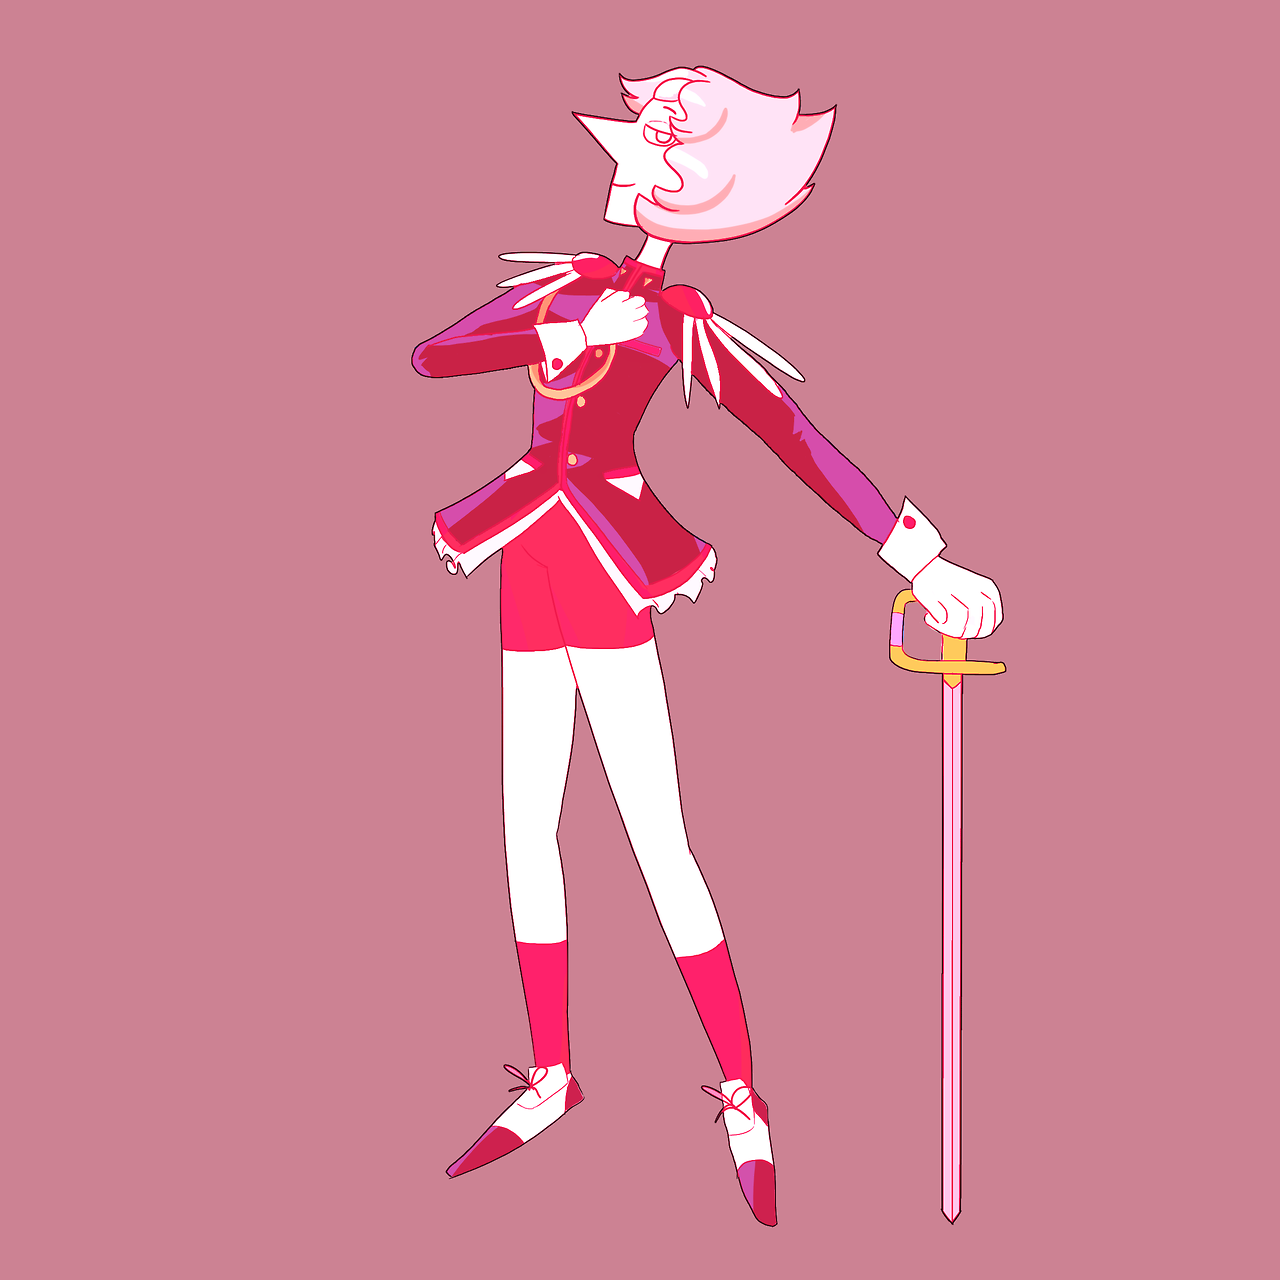 made pearl look like that one anime with the gays and swords